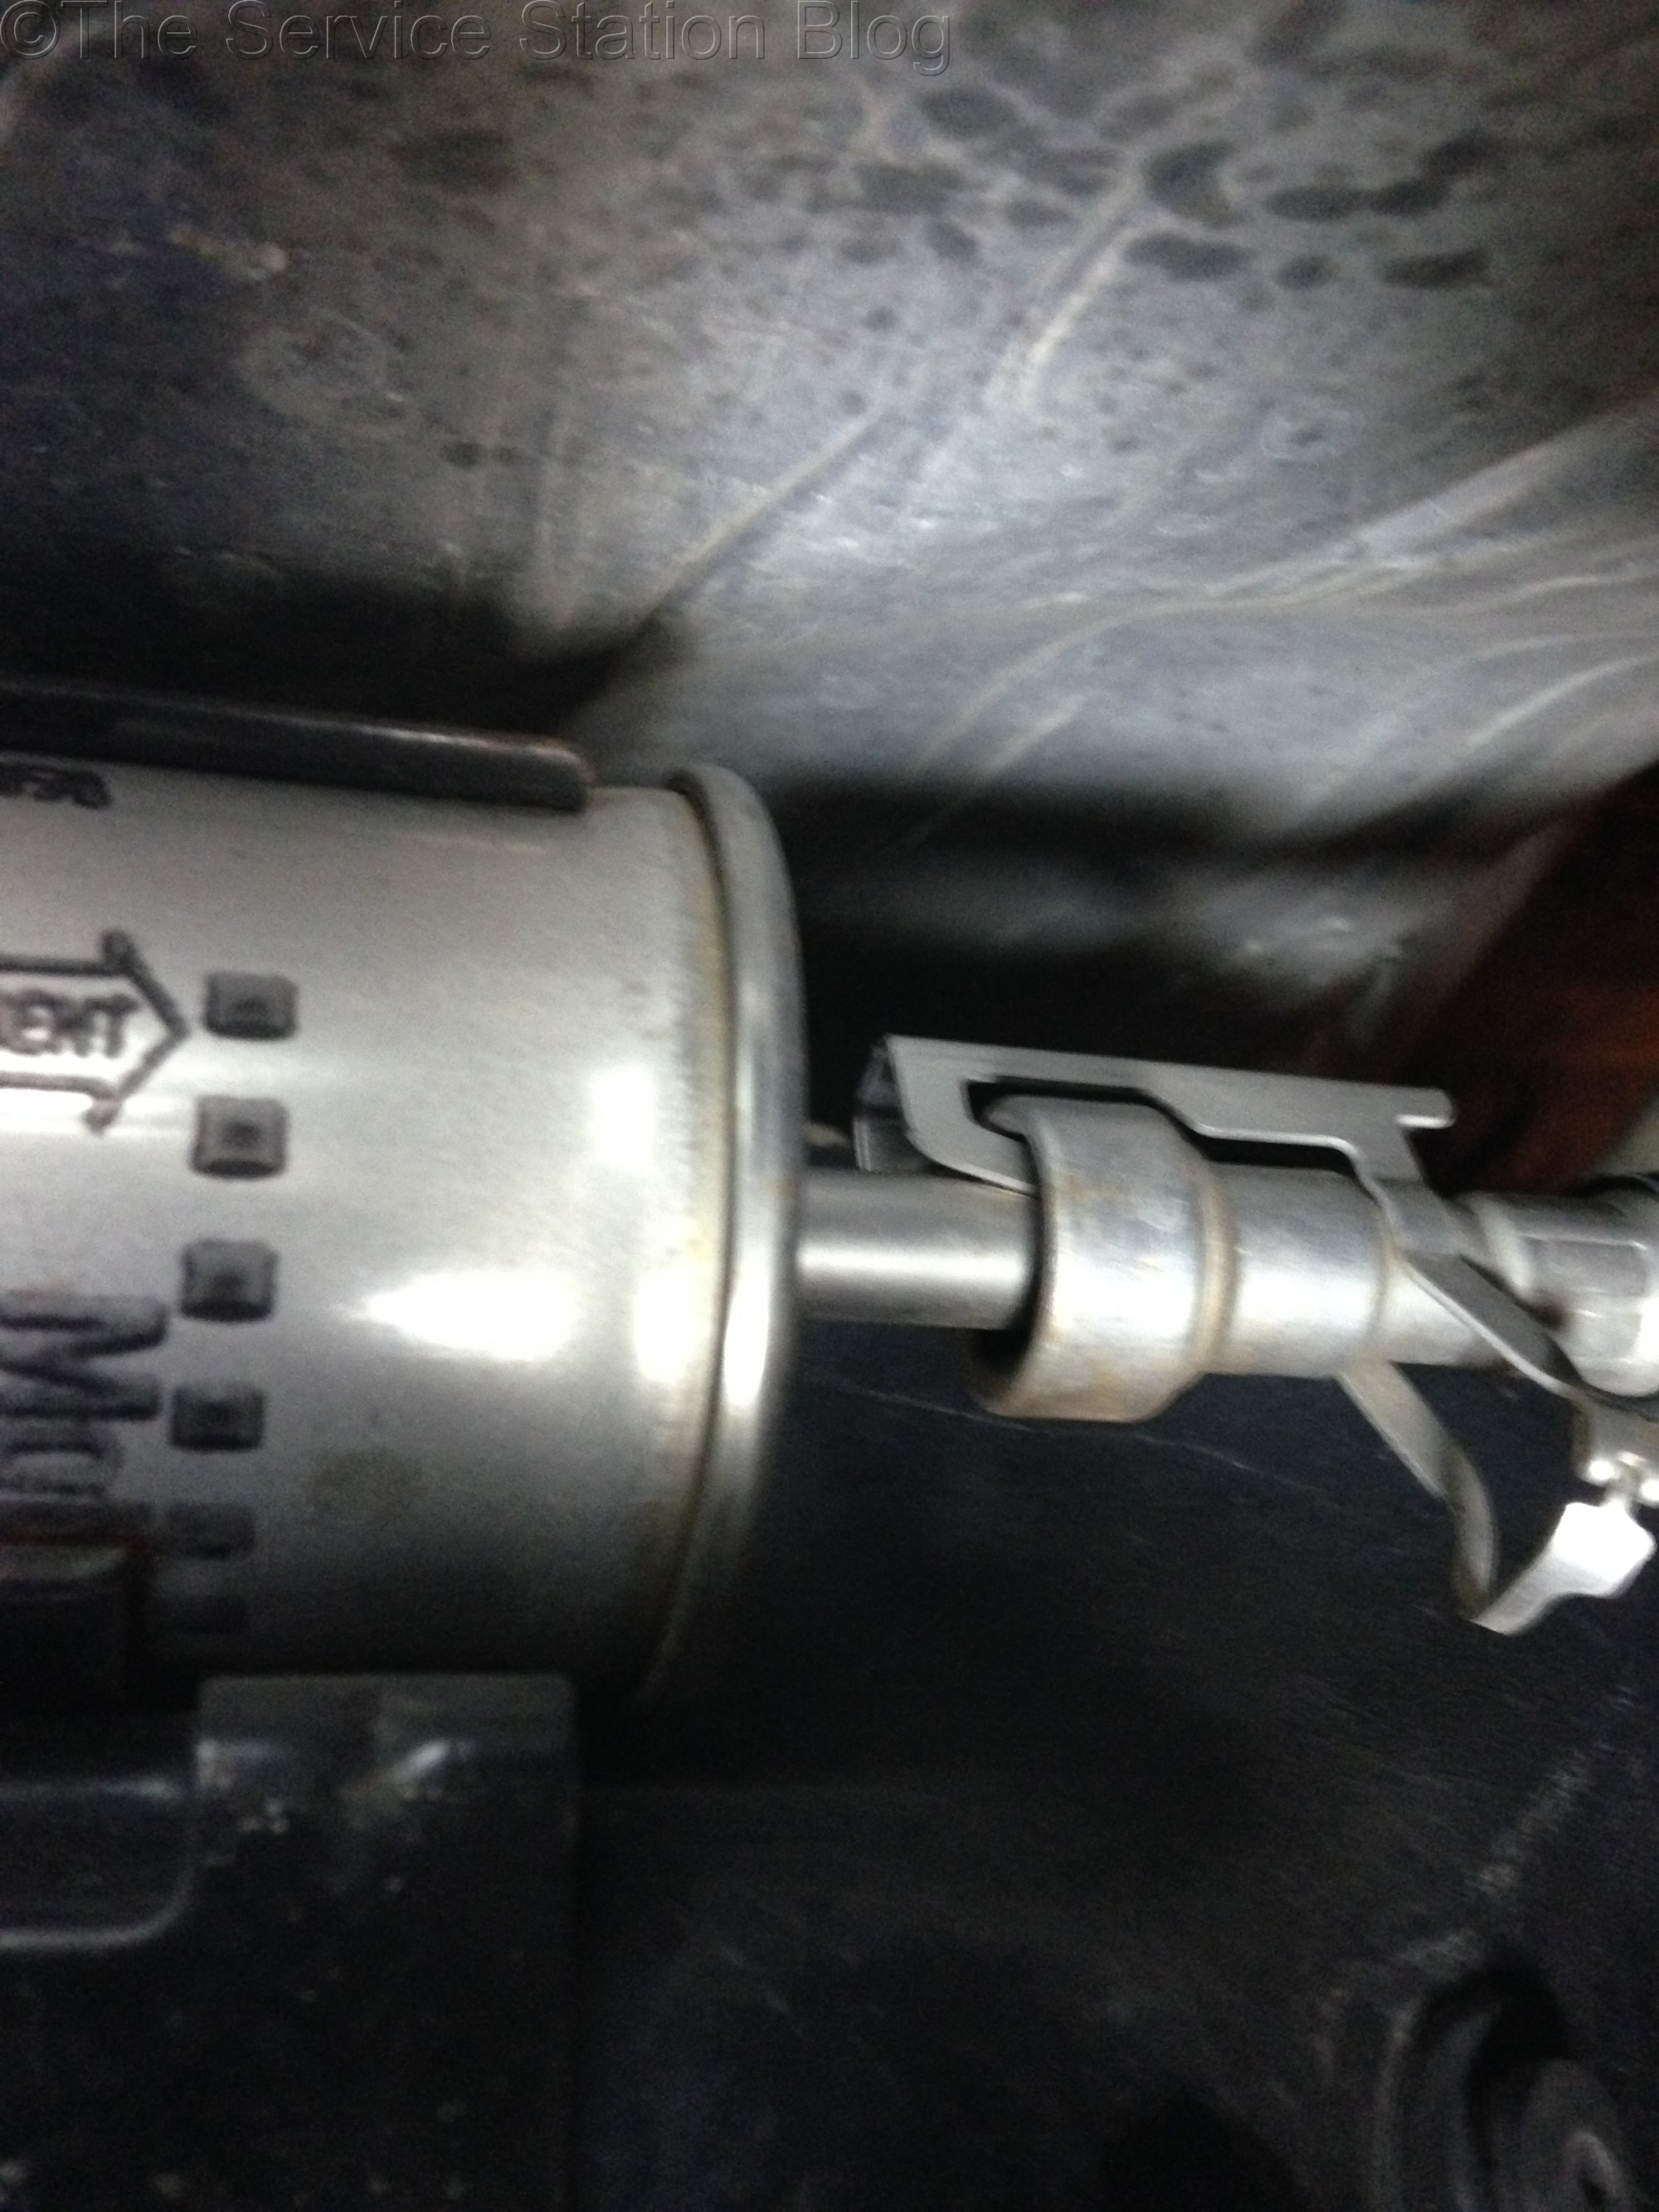 hight resolution of fuel filter replacement u2013 2005 mercury mountaineer the serviceimg 1547 st the service station blog